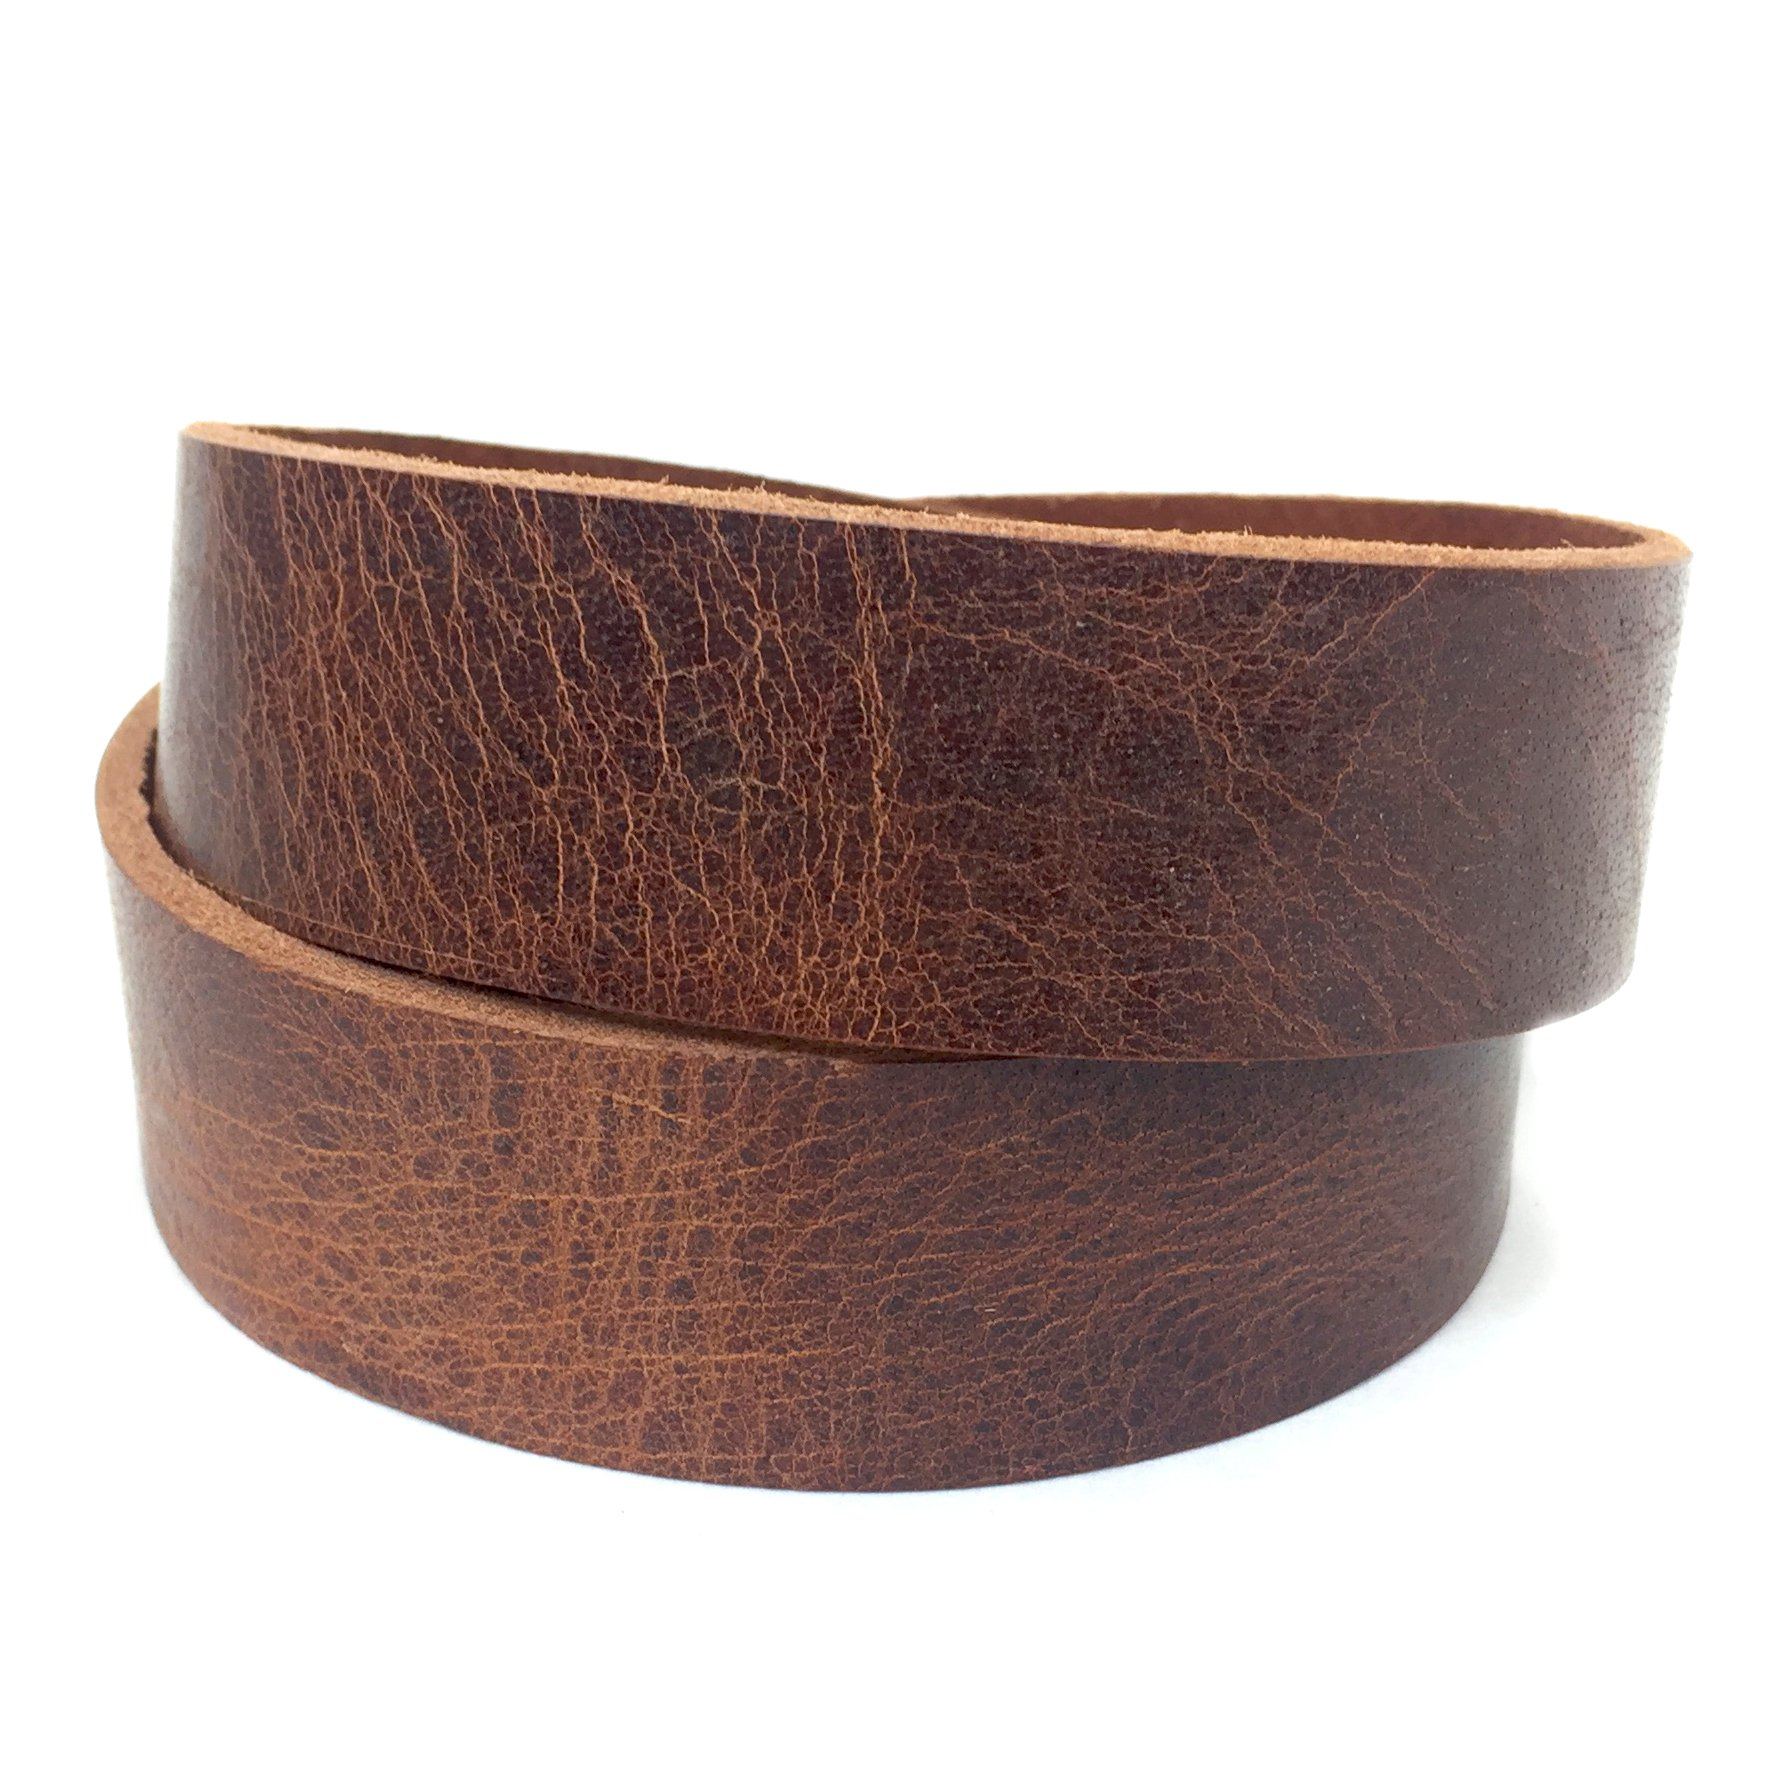 "Springfield Leather Company's Buffalo Leather Strips (1-1/4"", Vintage Tan)"